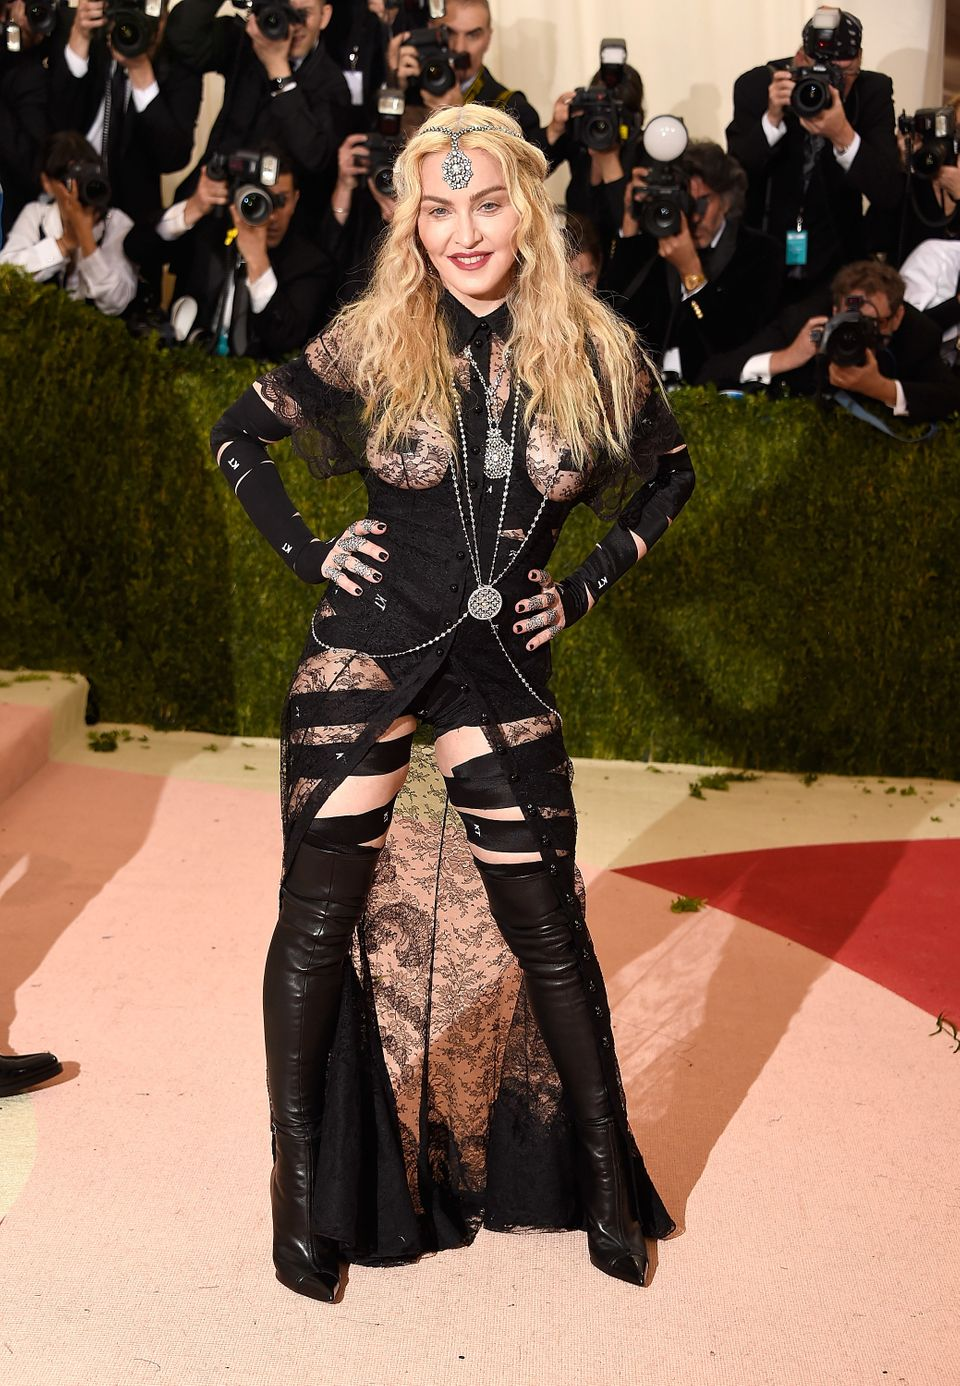 0a4c61ef81 60 Of Madonna's Most Iconic Fashion Moments Through The Years ...